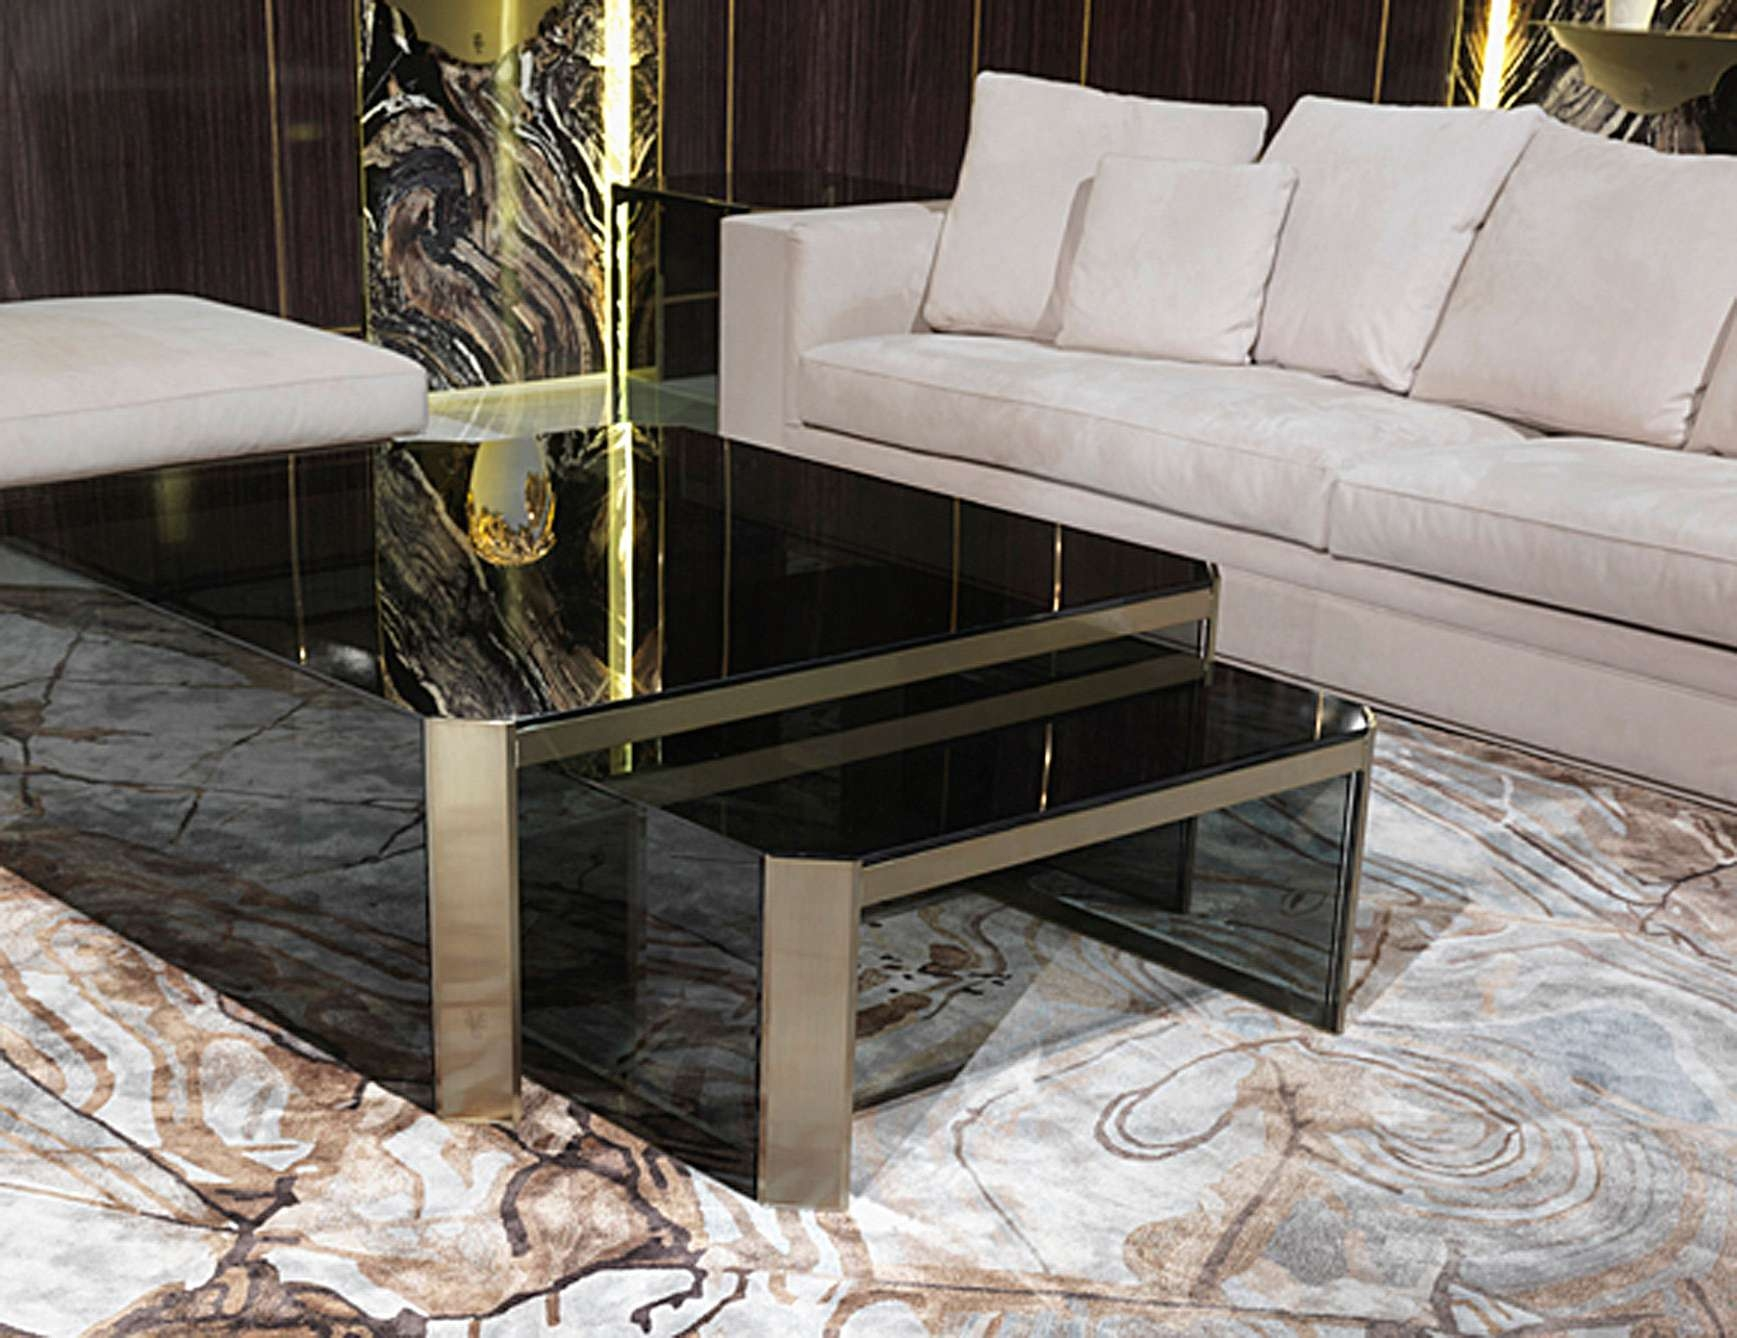 Current Luxury Coffee Tables Within Nella Vetrina Visionnaire Ipe Cavalli Barrett Smoked Glass Luxury (View 2 of 20)